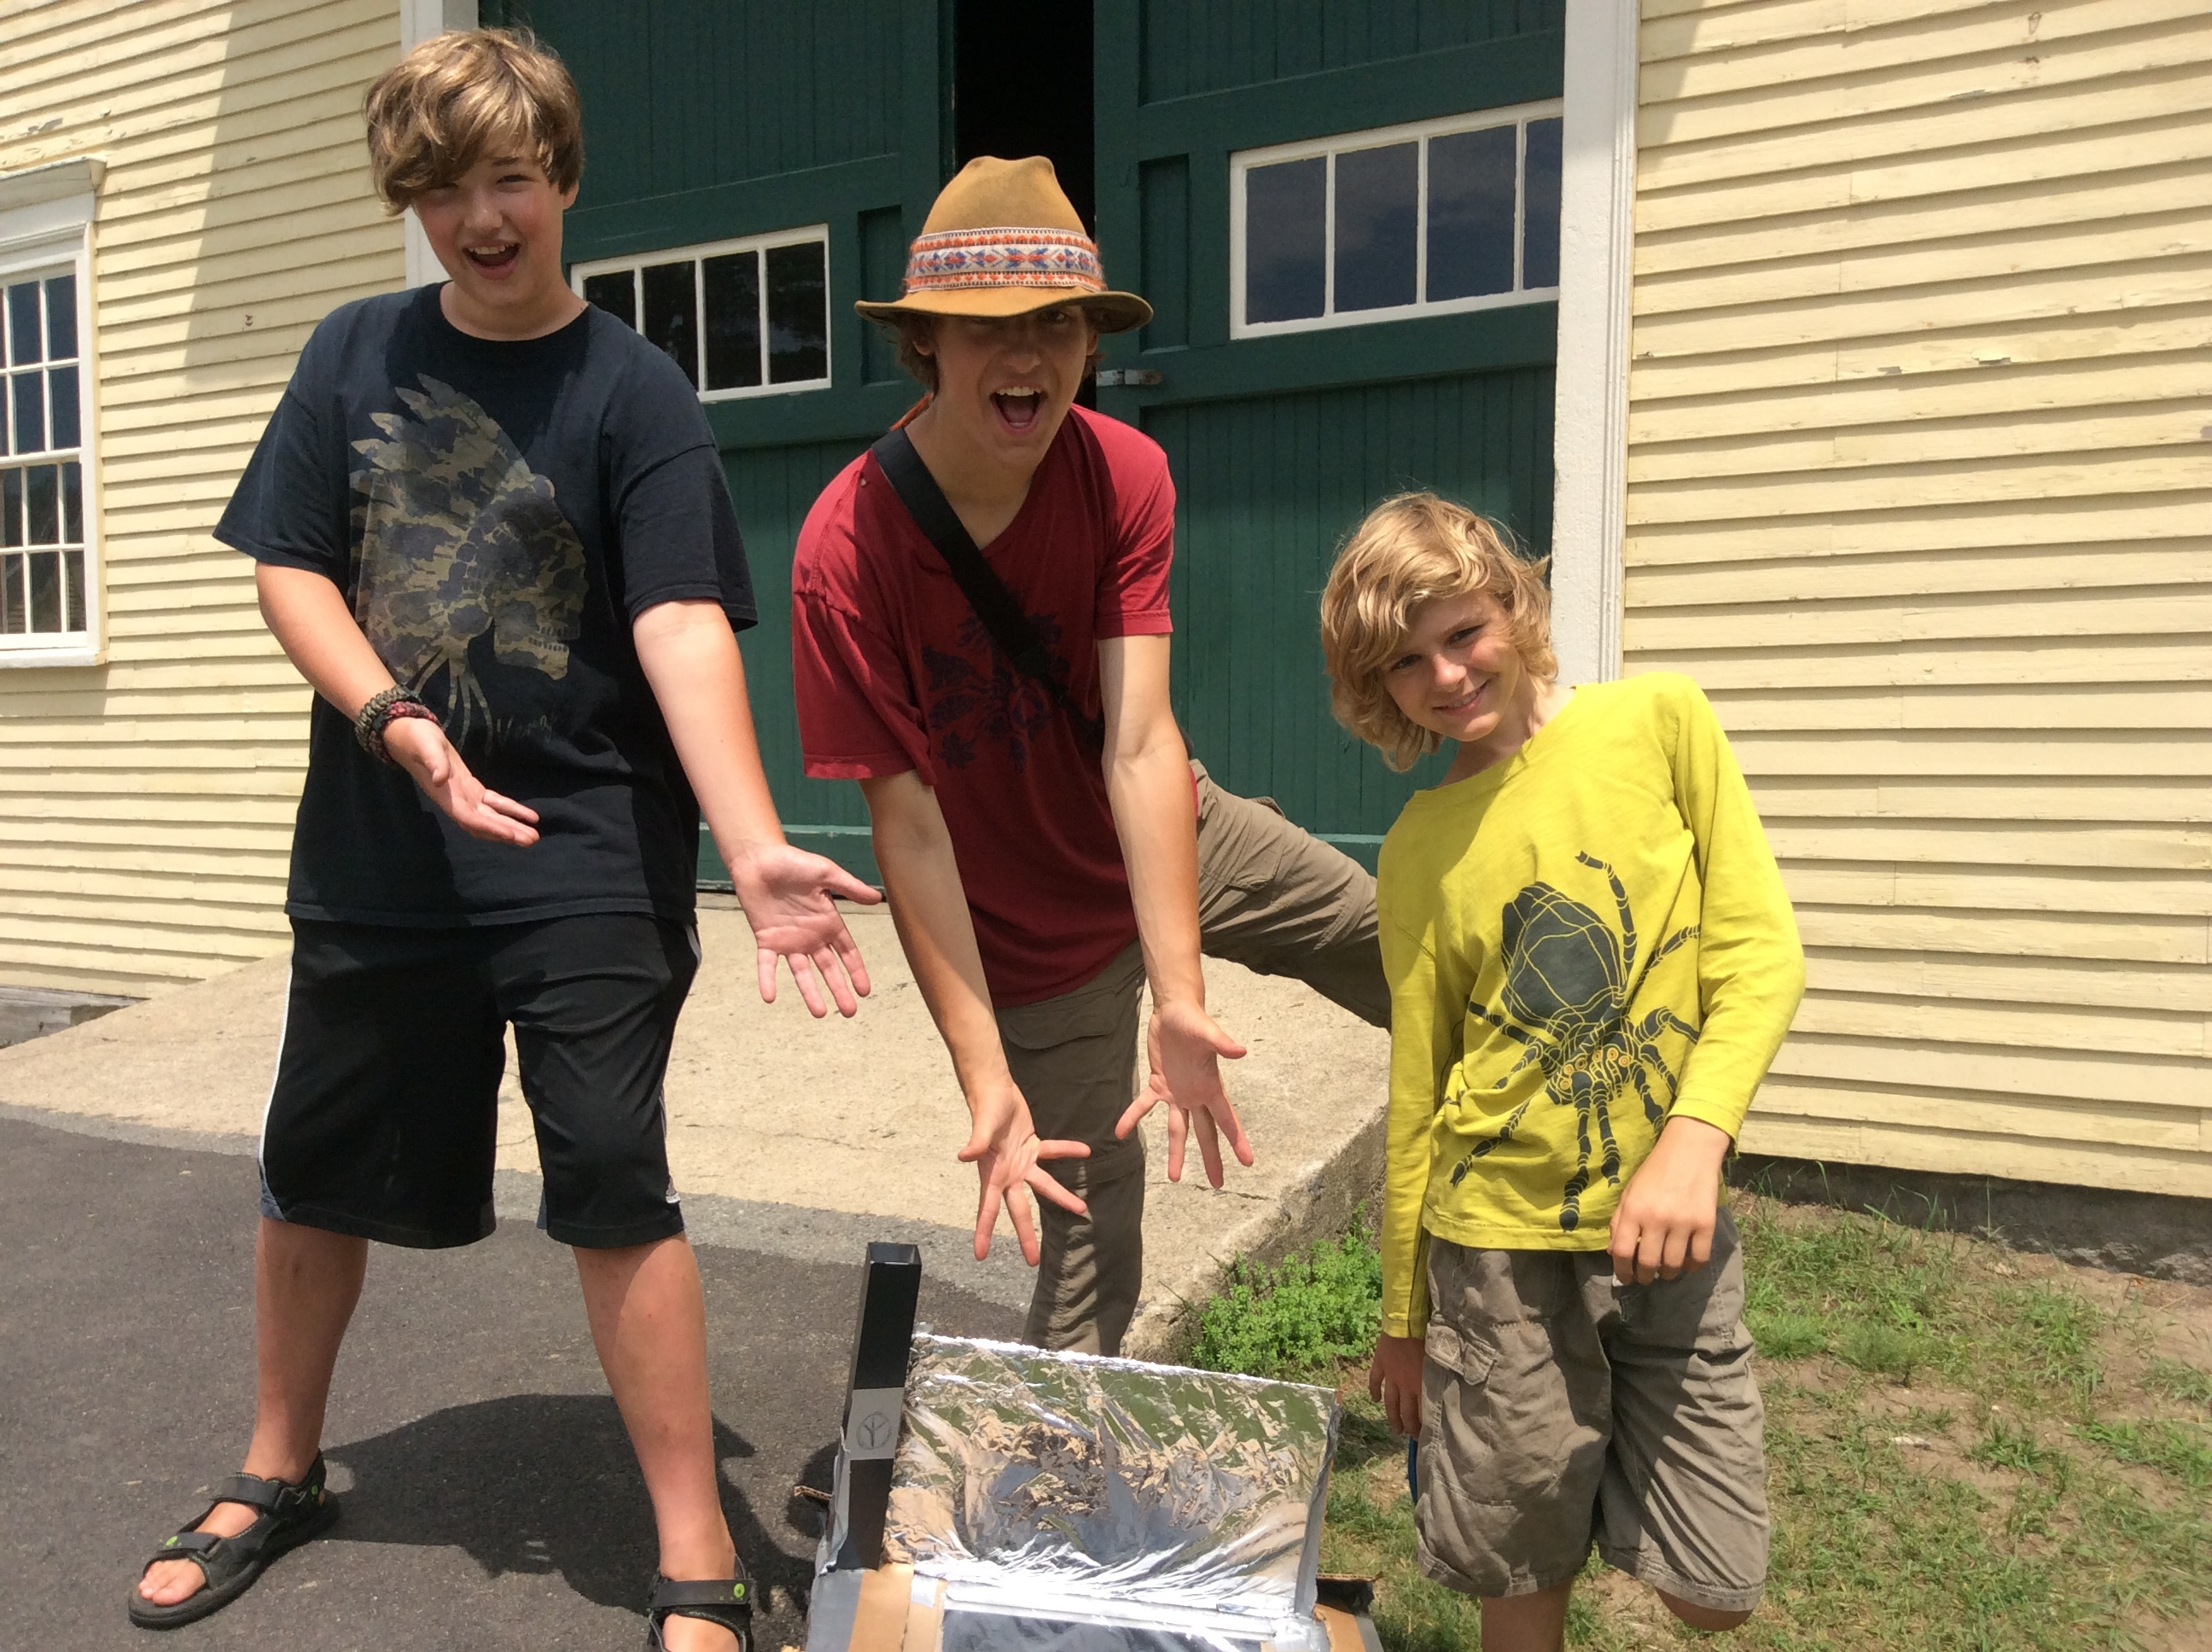 Campers with solar oven